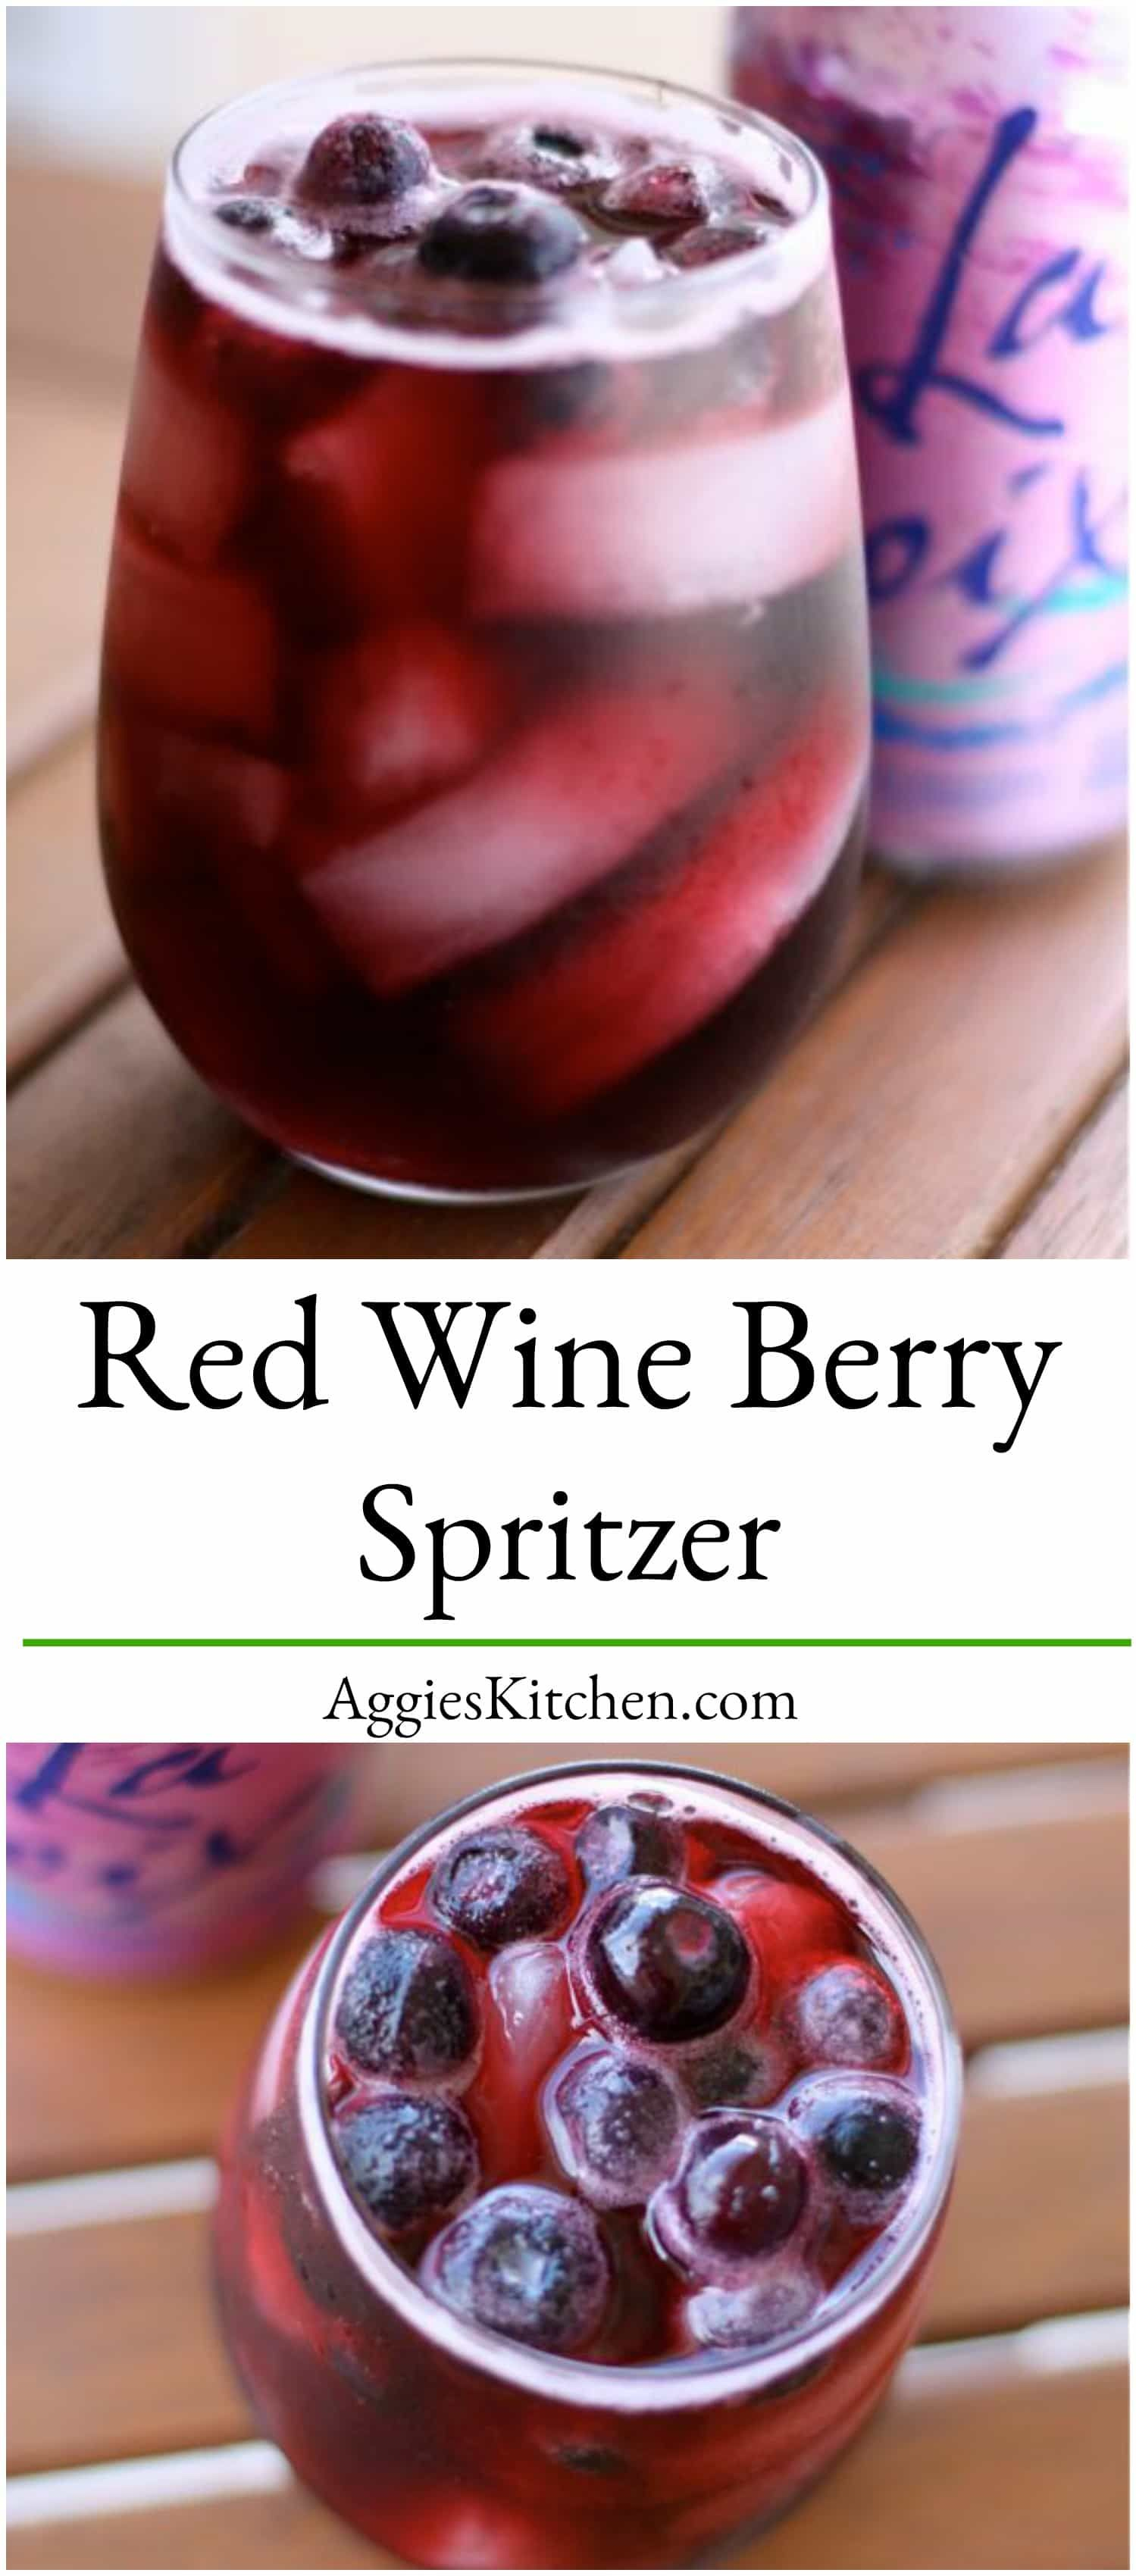 Red Wine Berry Spritzer Recipe Spritzer Recipes Wine Recipes Drink Spritzer Drink